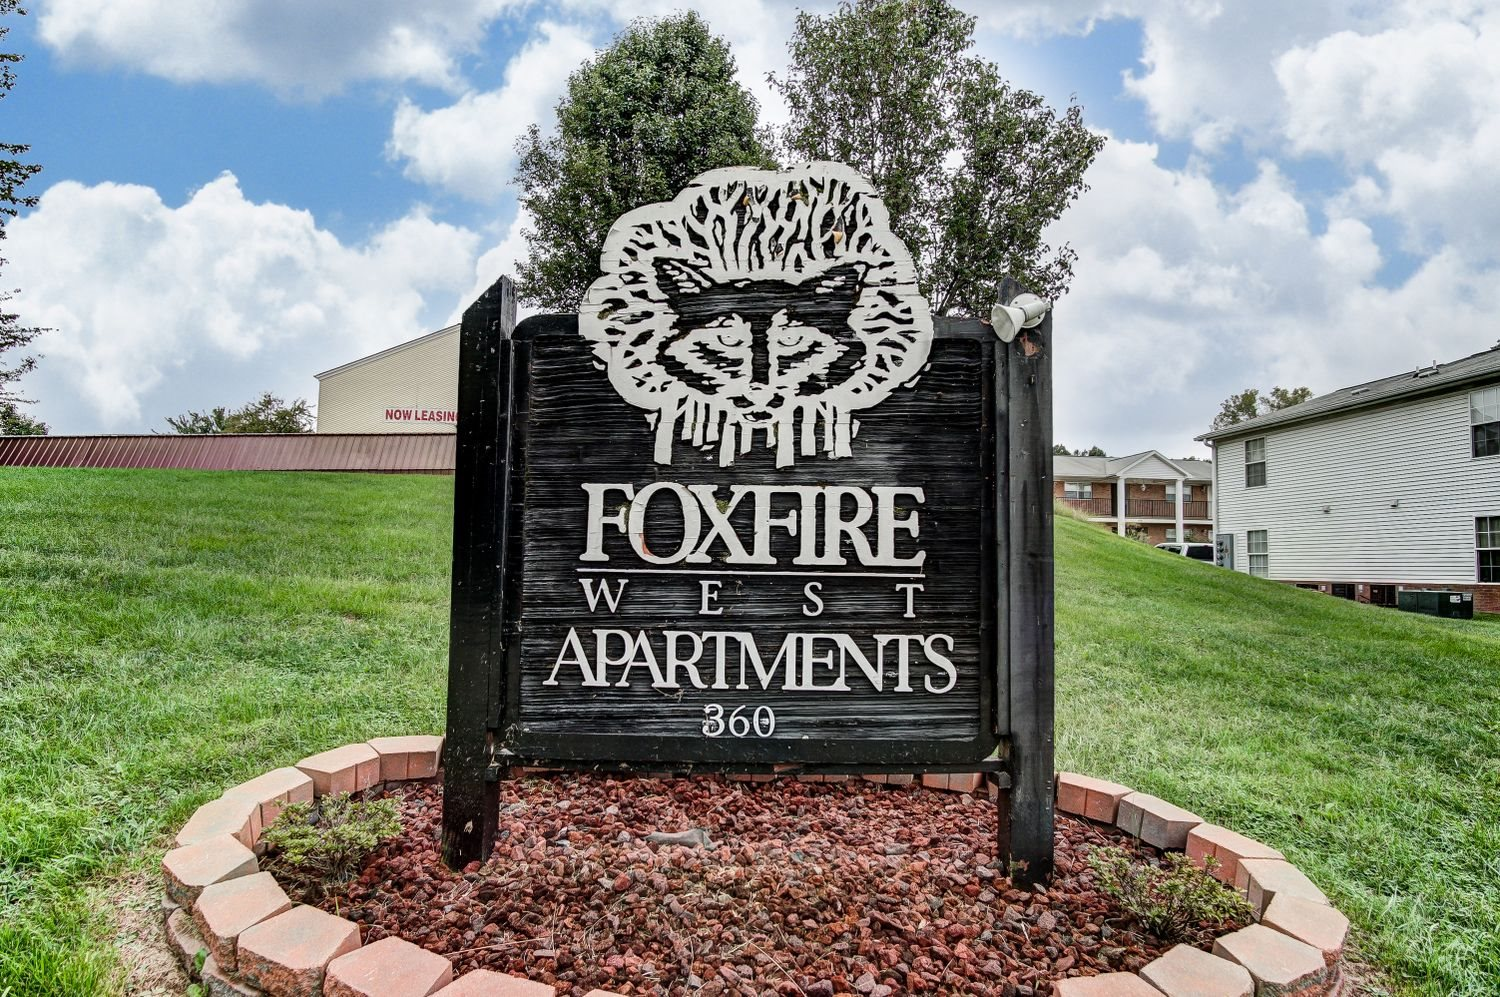 Welcome to Foxfire West Apartments